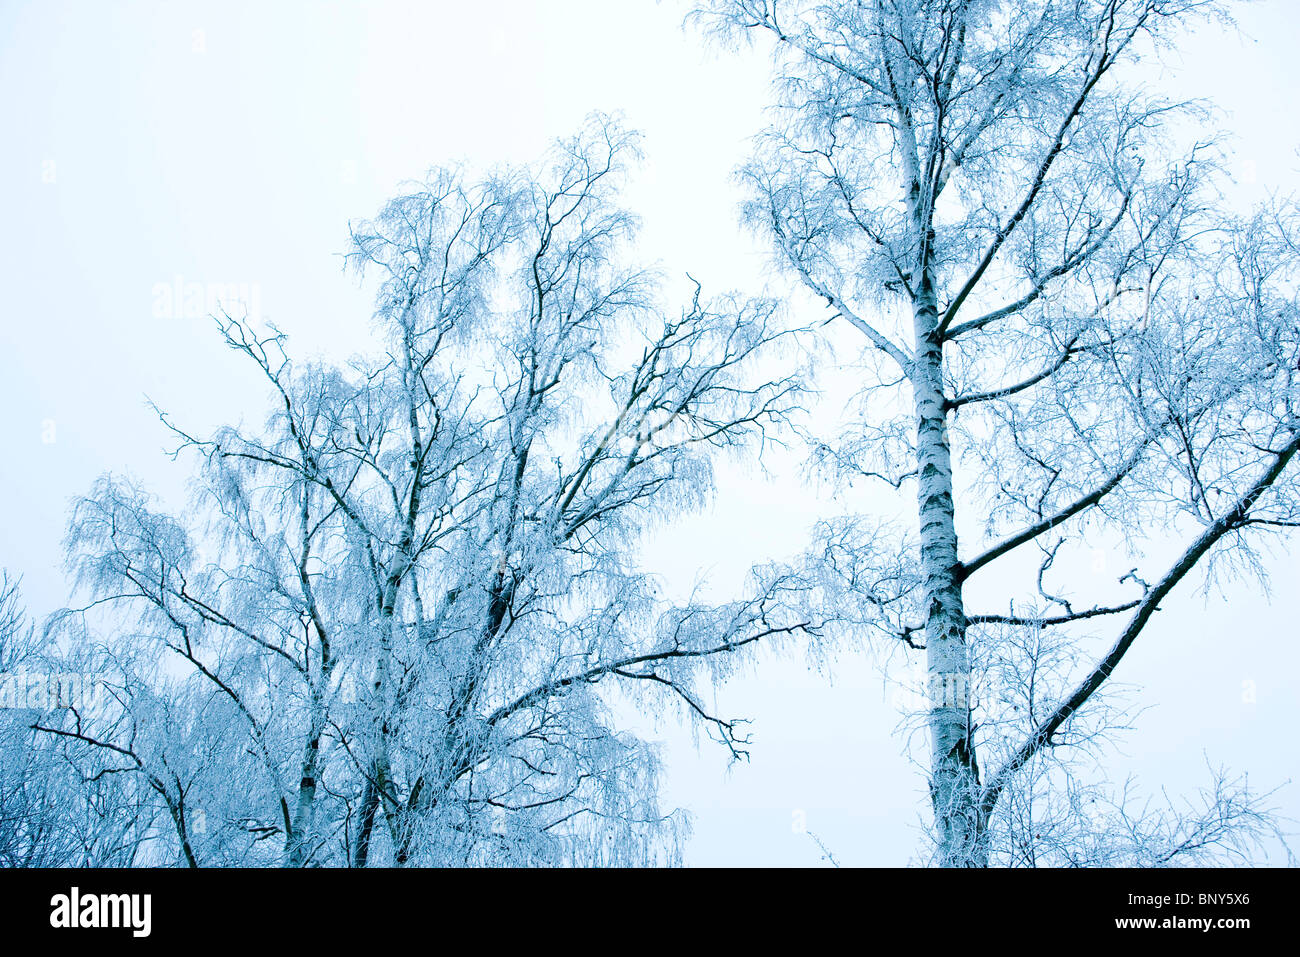 Bare trees dusted with snow - Stock Image